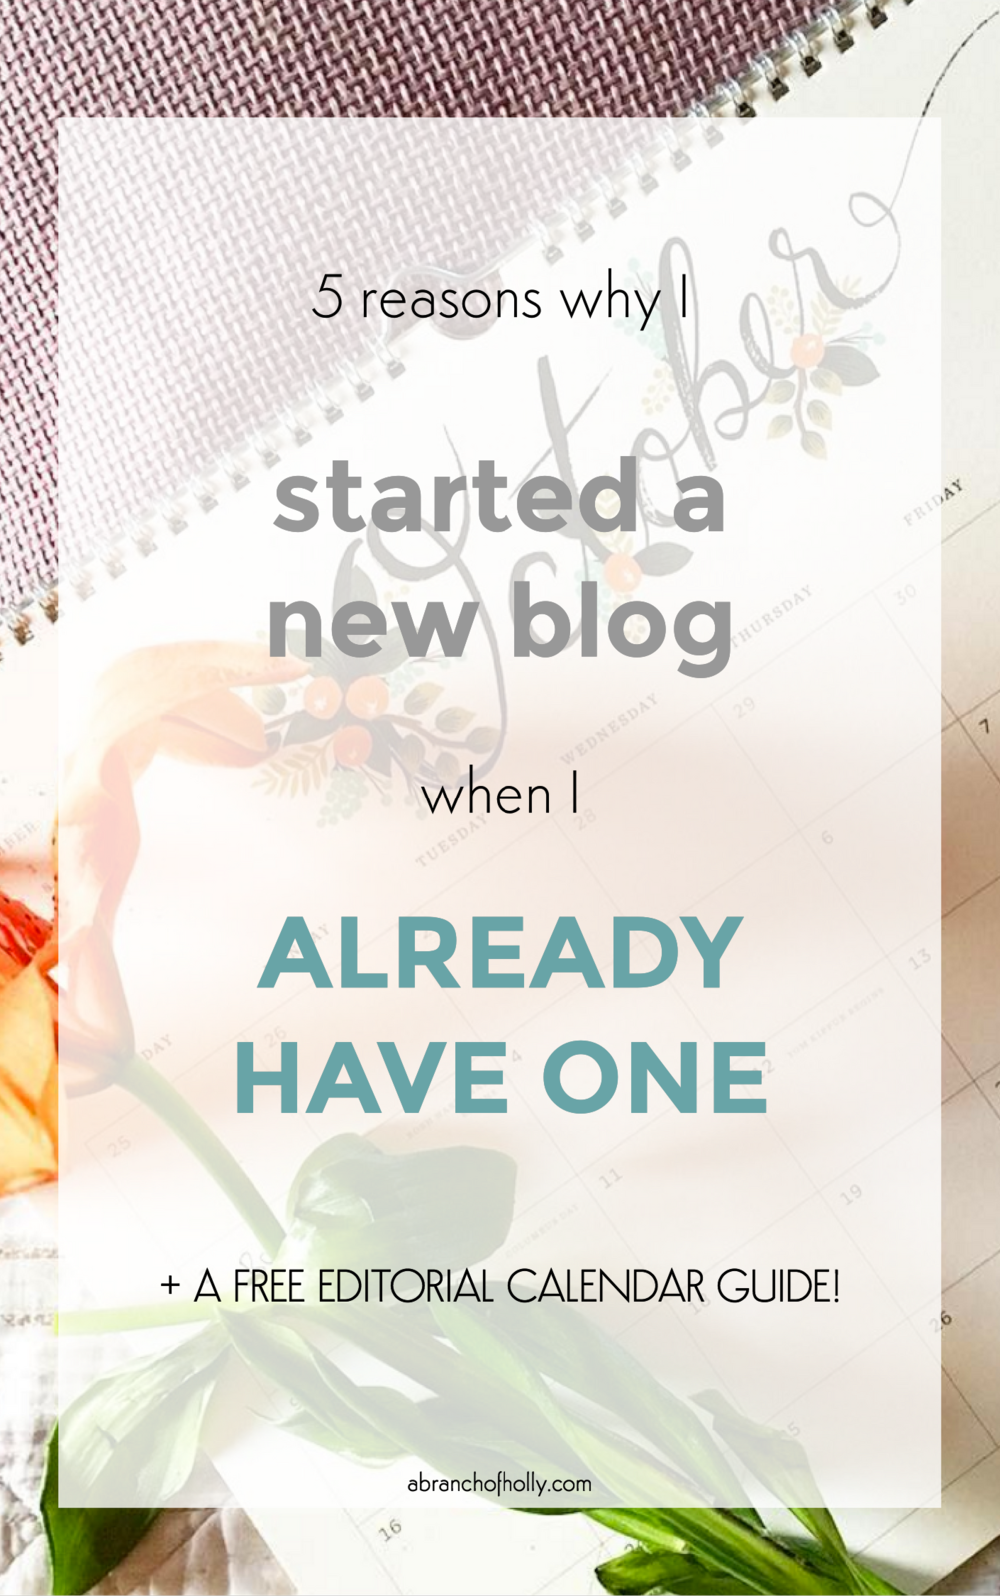 5 reasons why I'm starting a new blog when I already have one